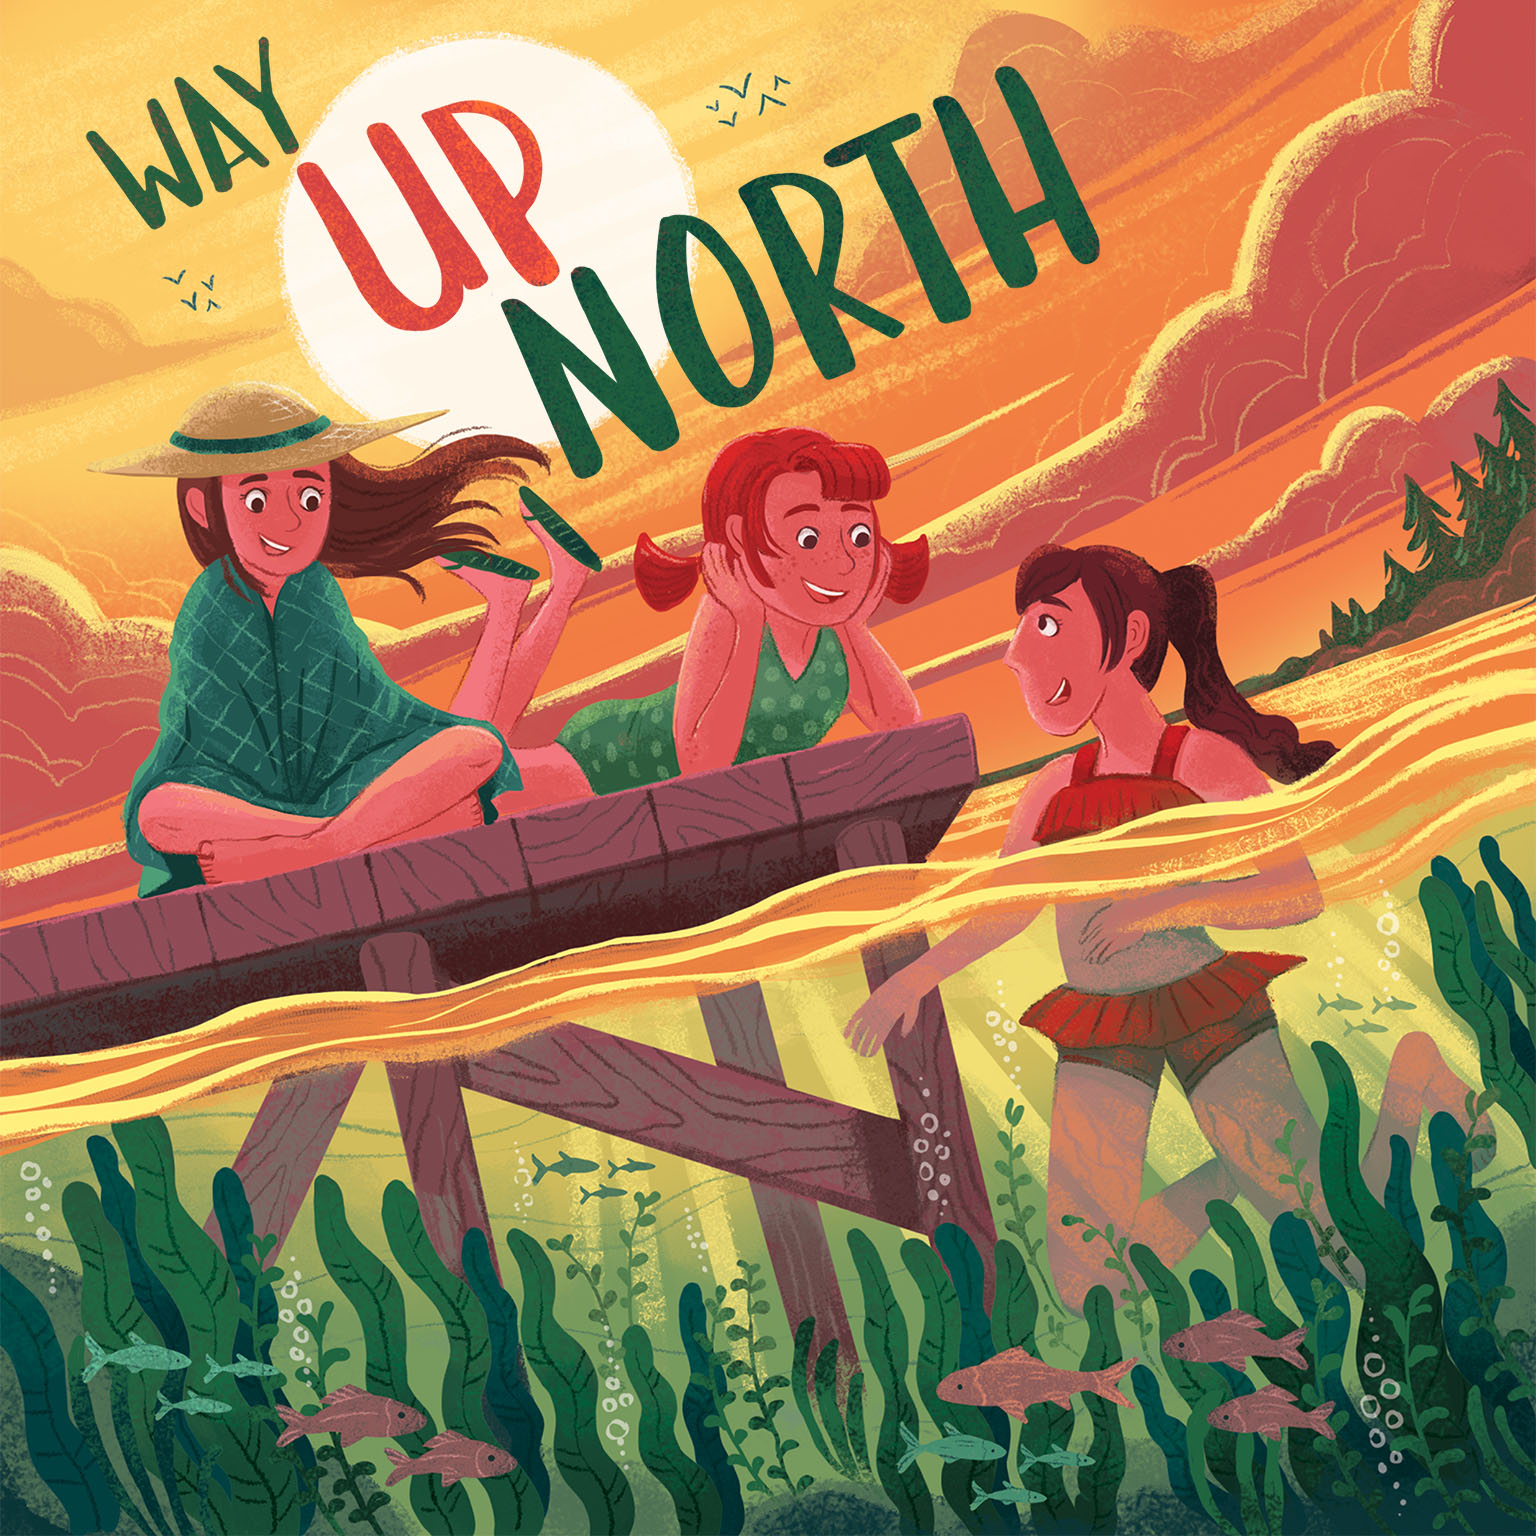 Web_WayUpNorth_Text_Girls_Cottage_Sunset_Lake_Fish_Teen_MiddleGrade_Cover_Tween.pdf.jpg